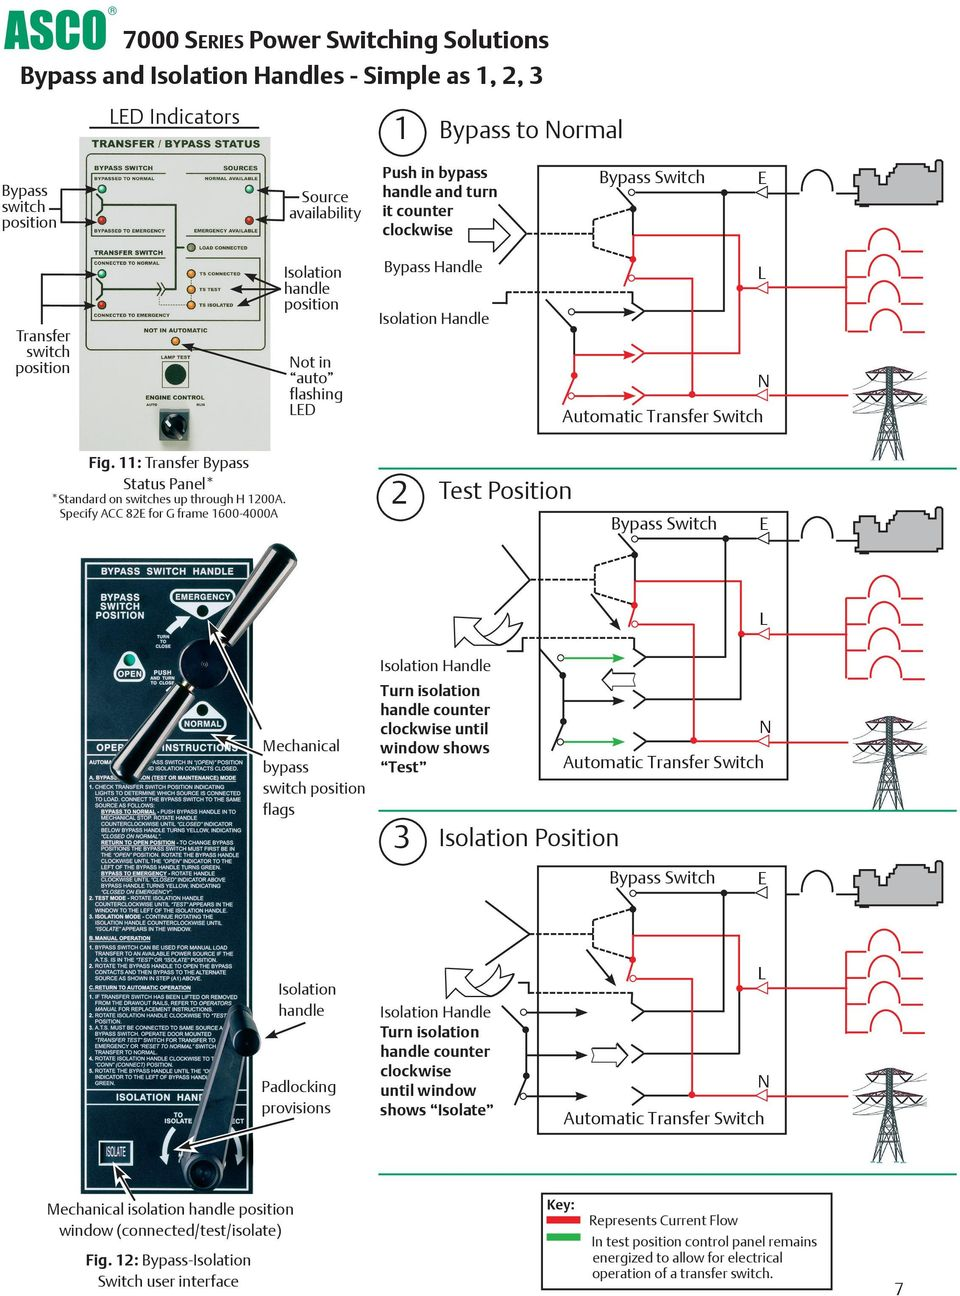 Asco 7000 Series Power Transfer Switches Pdf Ups Ats Circuit Diagram 11 Bypass Status Panel Standard On Up Through H 1200a